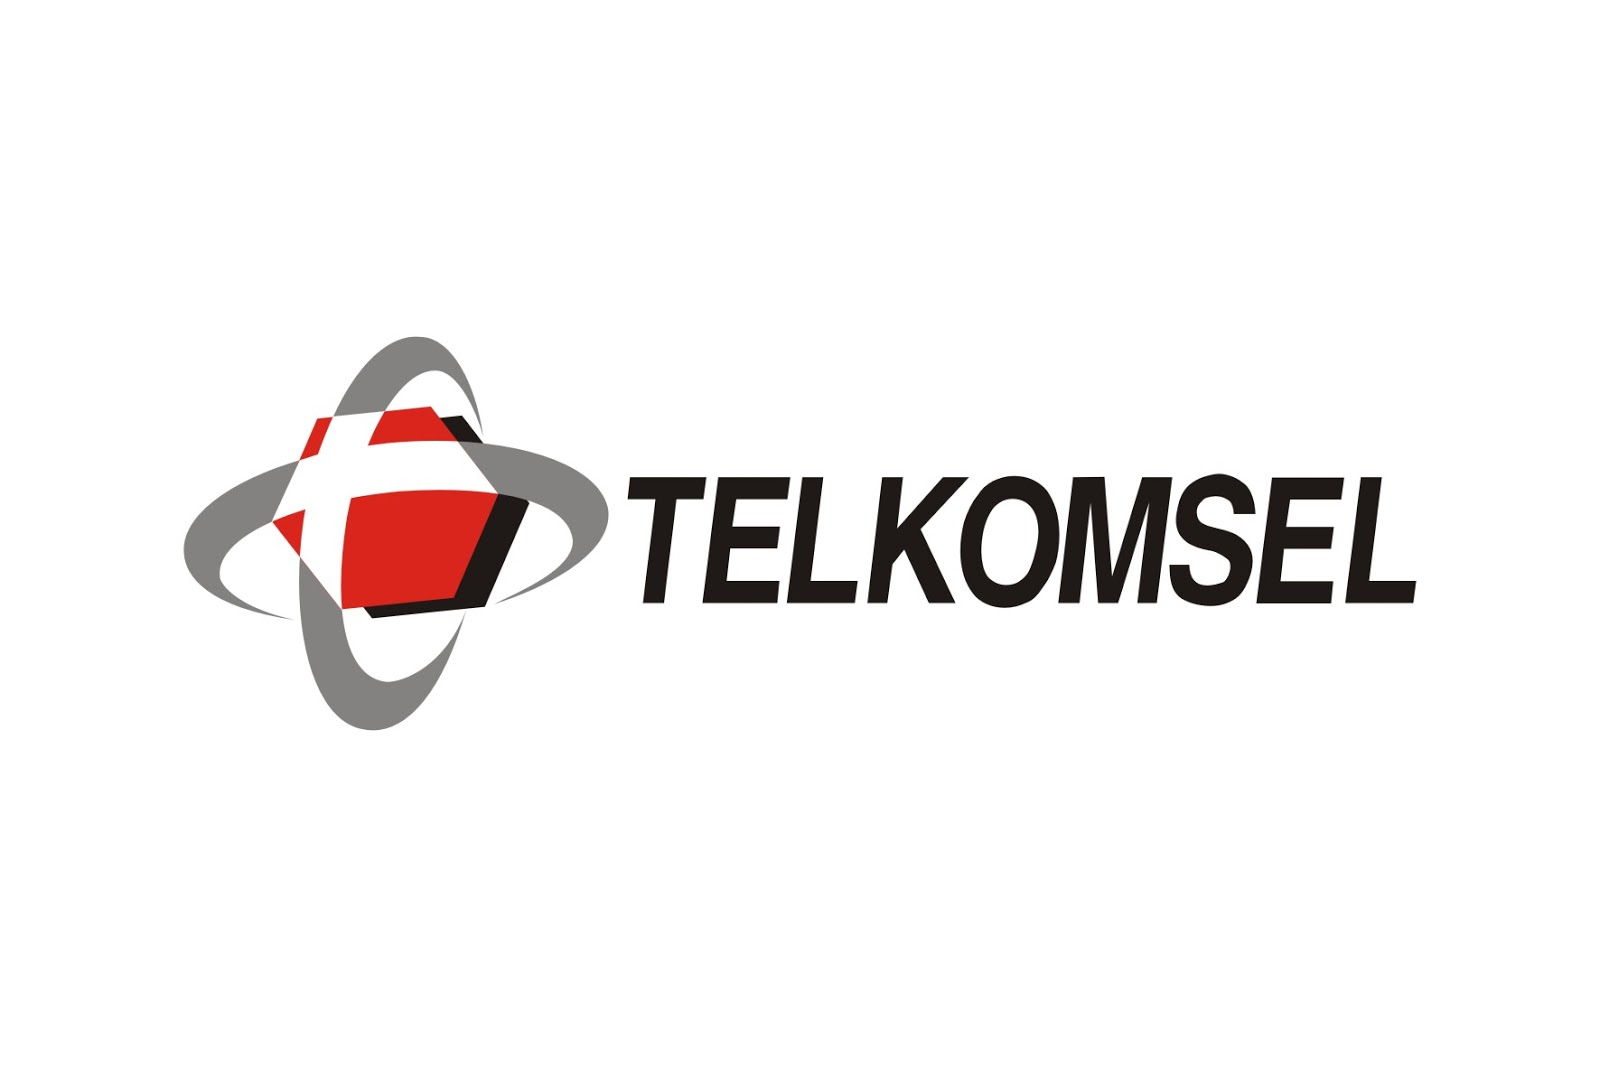 telkomsel background Digital technology enthusiast with computer science background and an mba focusing on process of business and crm-cc-bpt system with beneficiary for telkomsel.